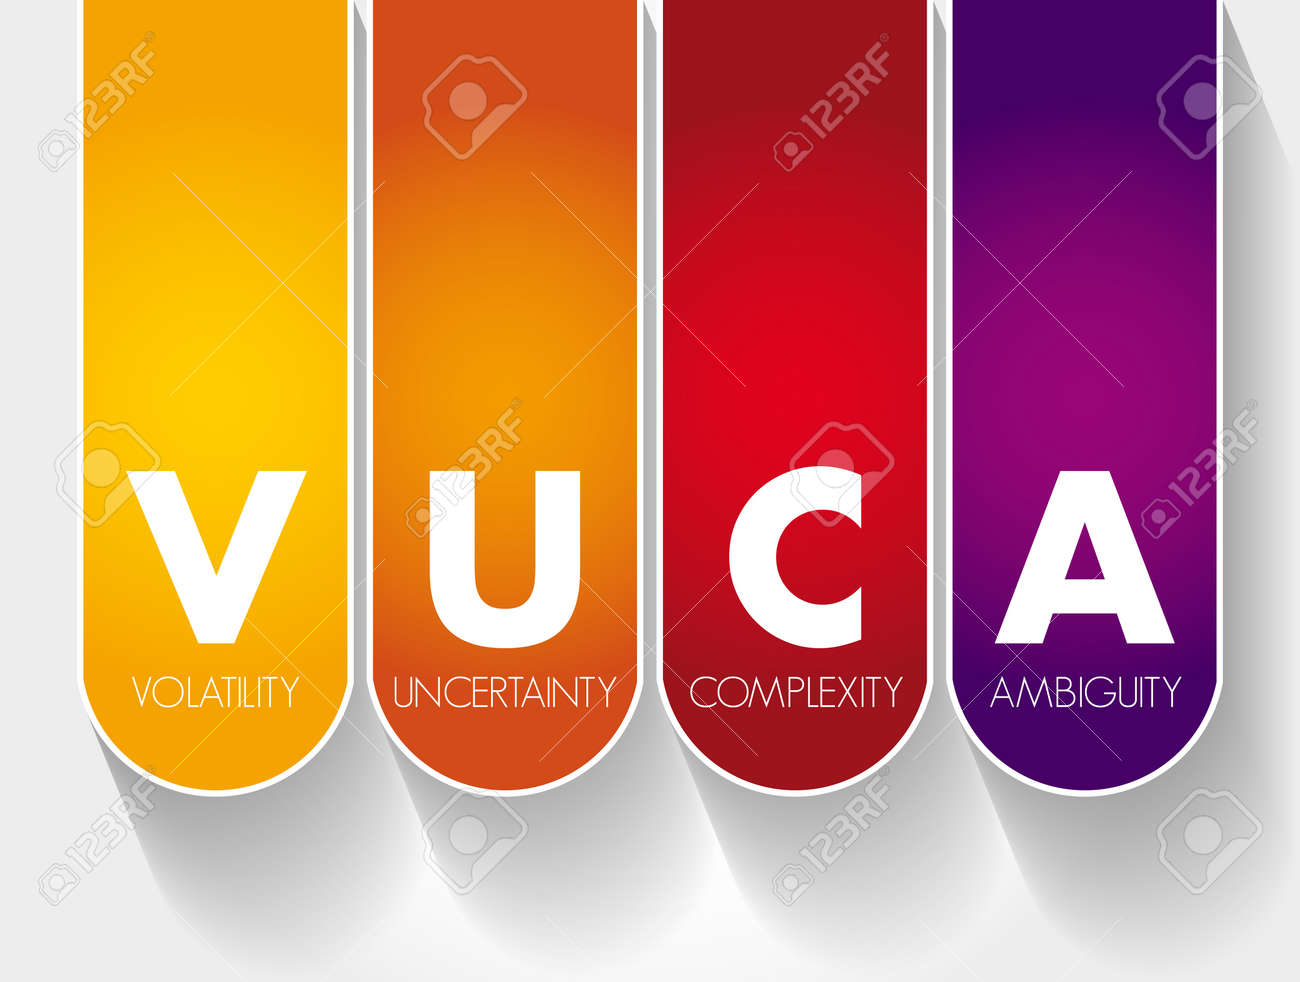 VUCA - Volatility, Uncertainty, Complexity, Ambiguity acronym, business concept background - 166149330